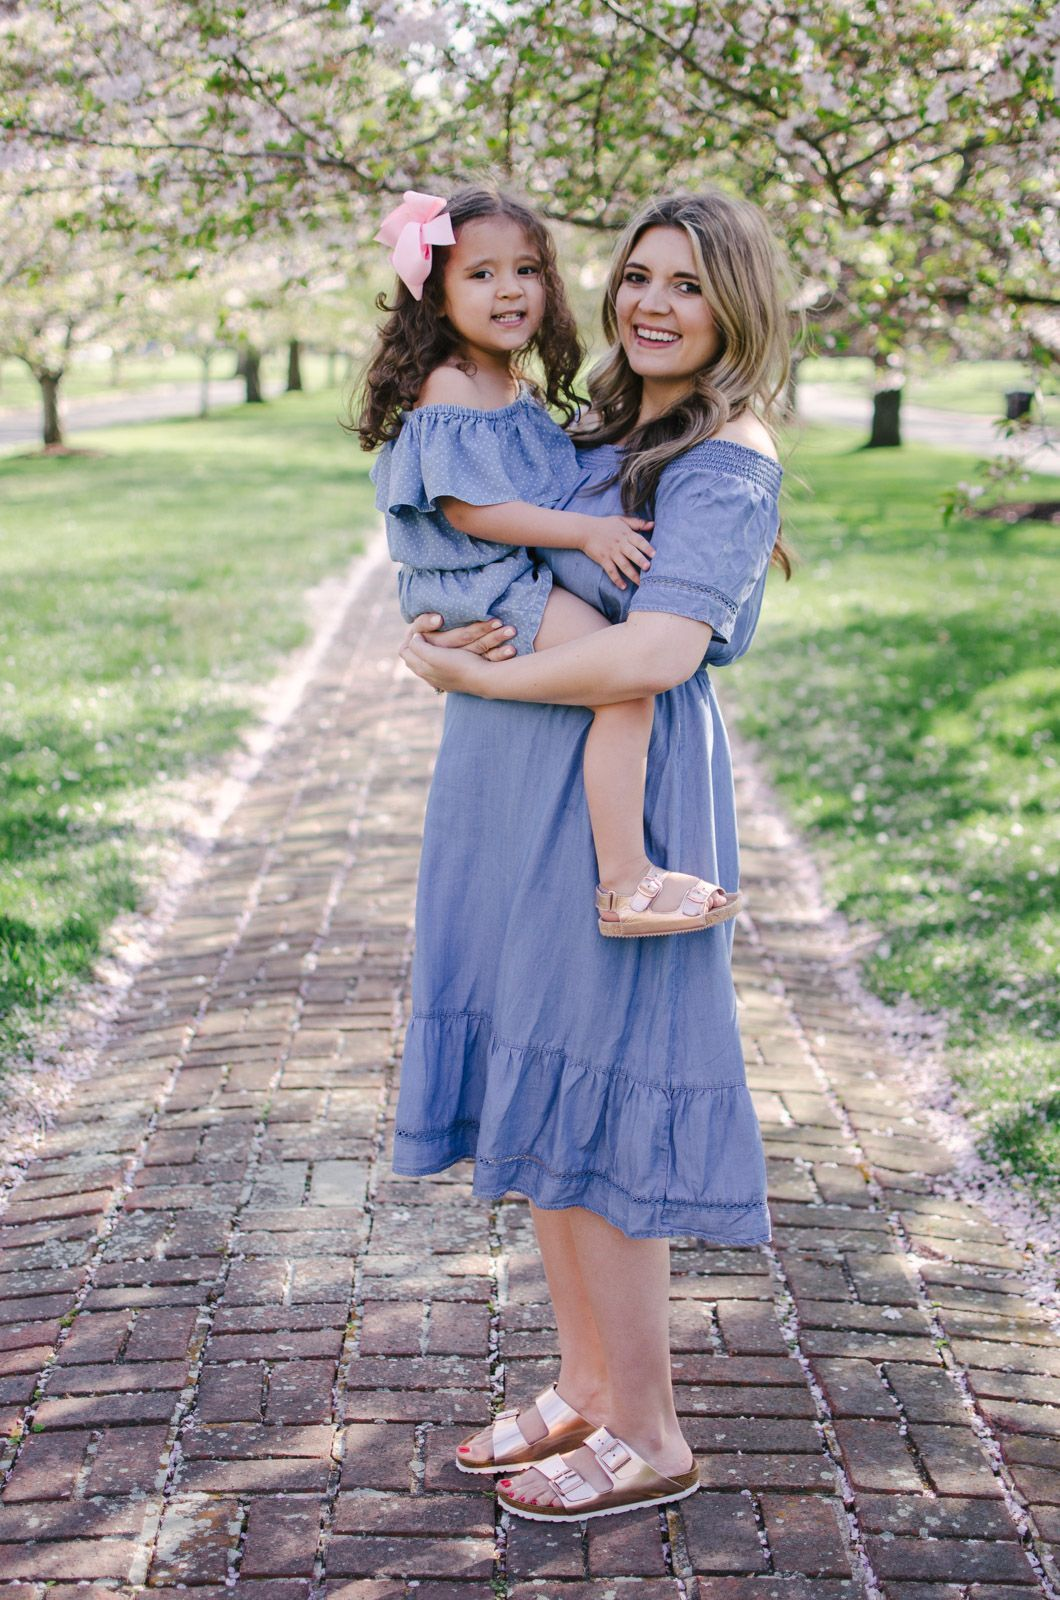 ce7e6247a123 Cute and Stylish Matching Mother-Daughter Outfits